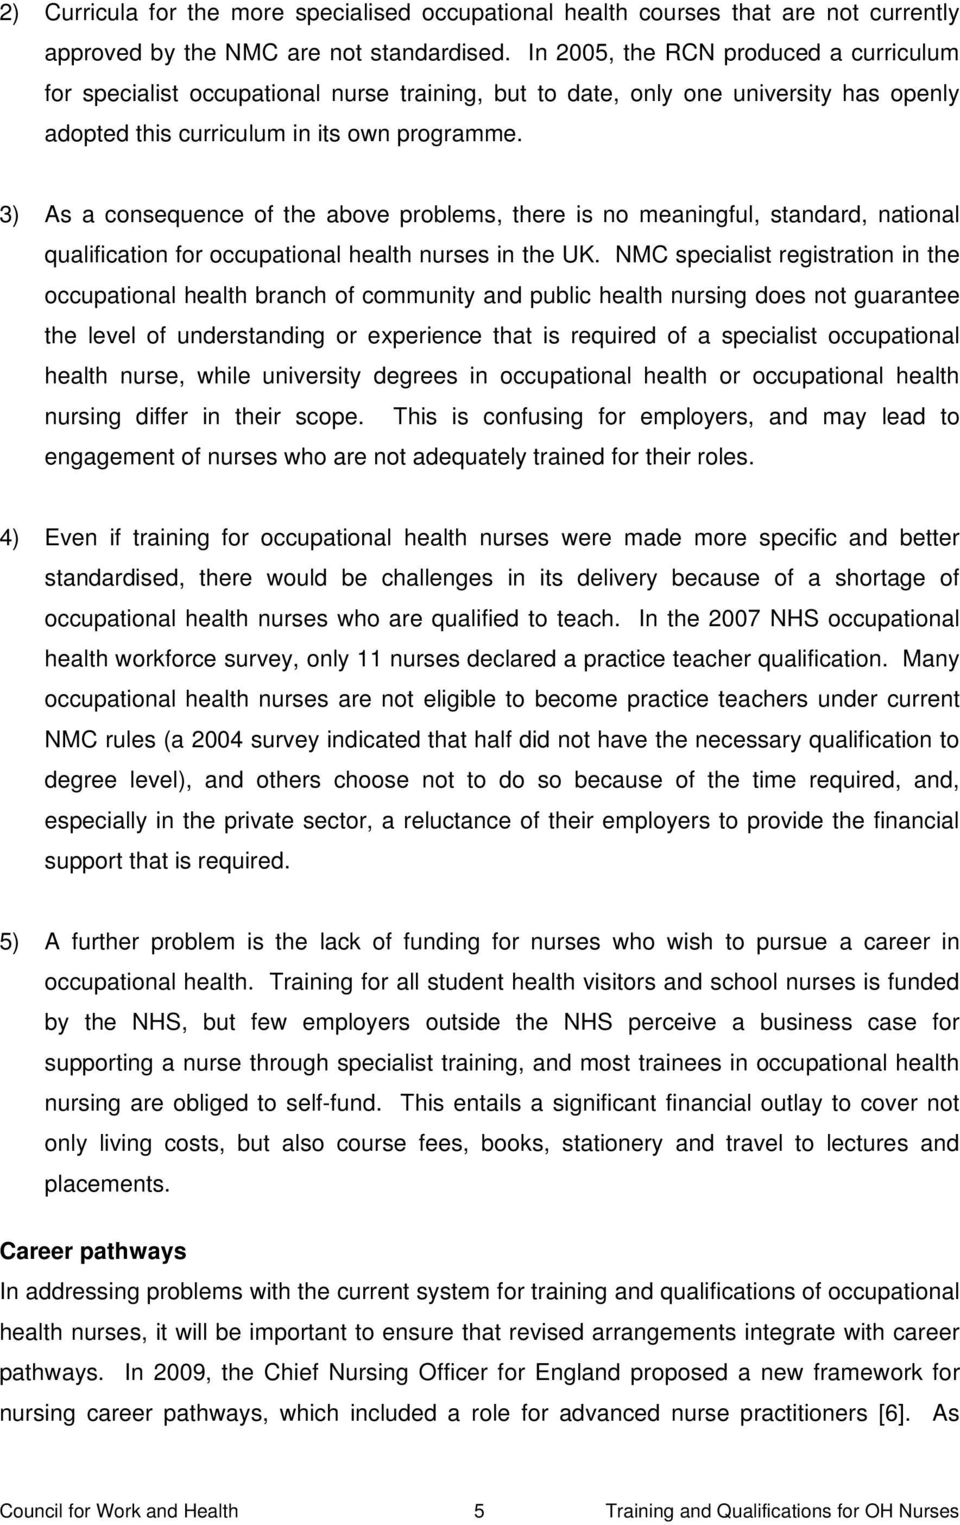 3) As a consequence of the above problems, there is no meaningful, standard, national qualification for occupational health nurses in the UK.